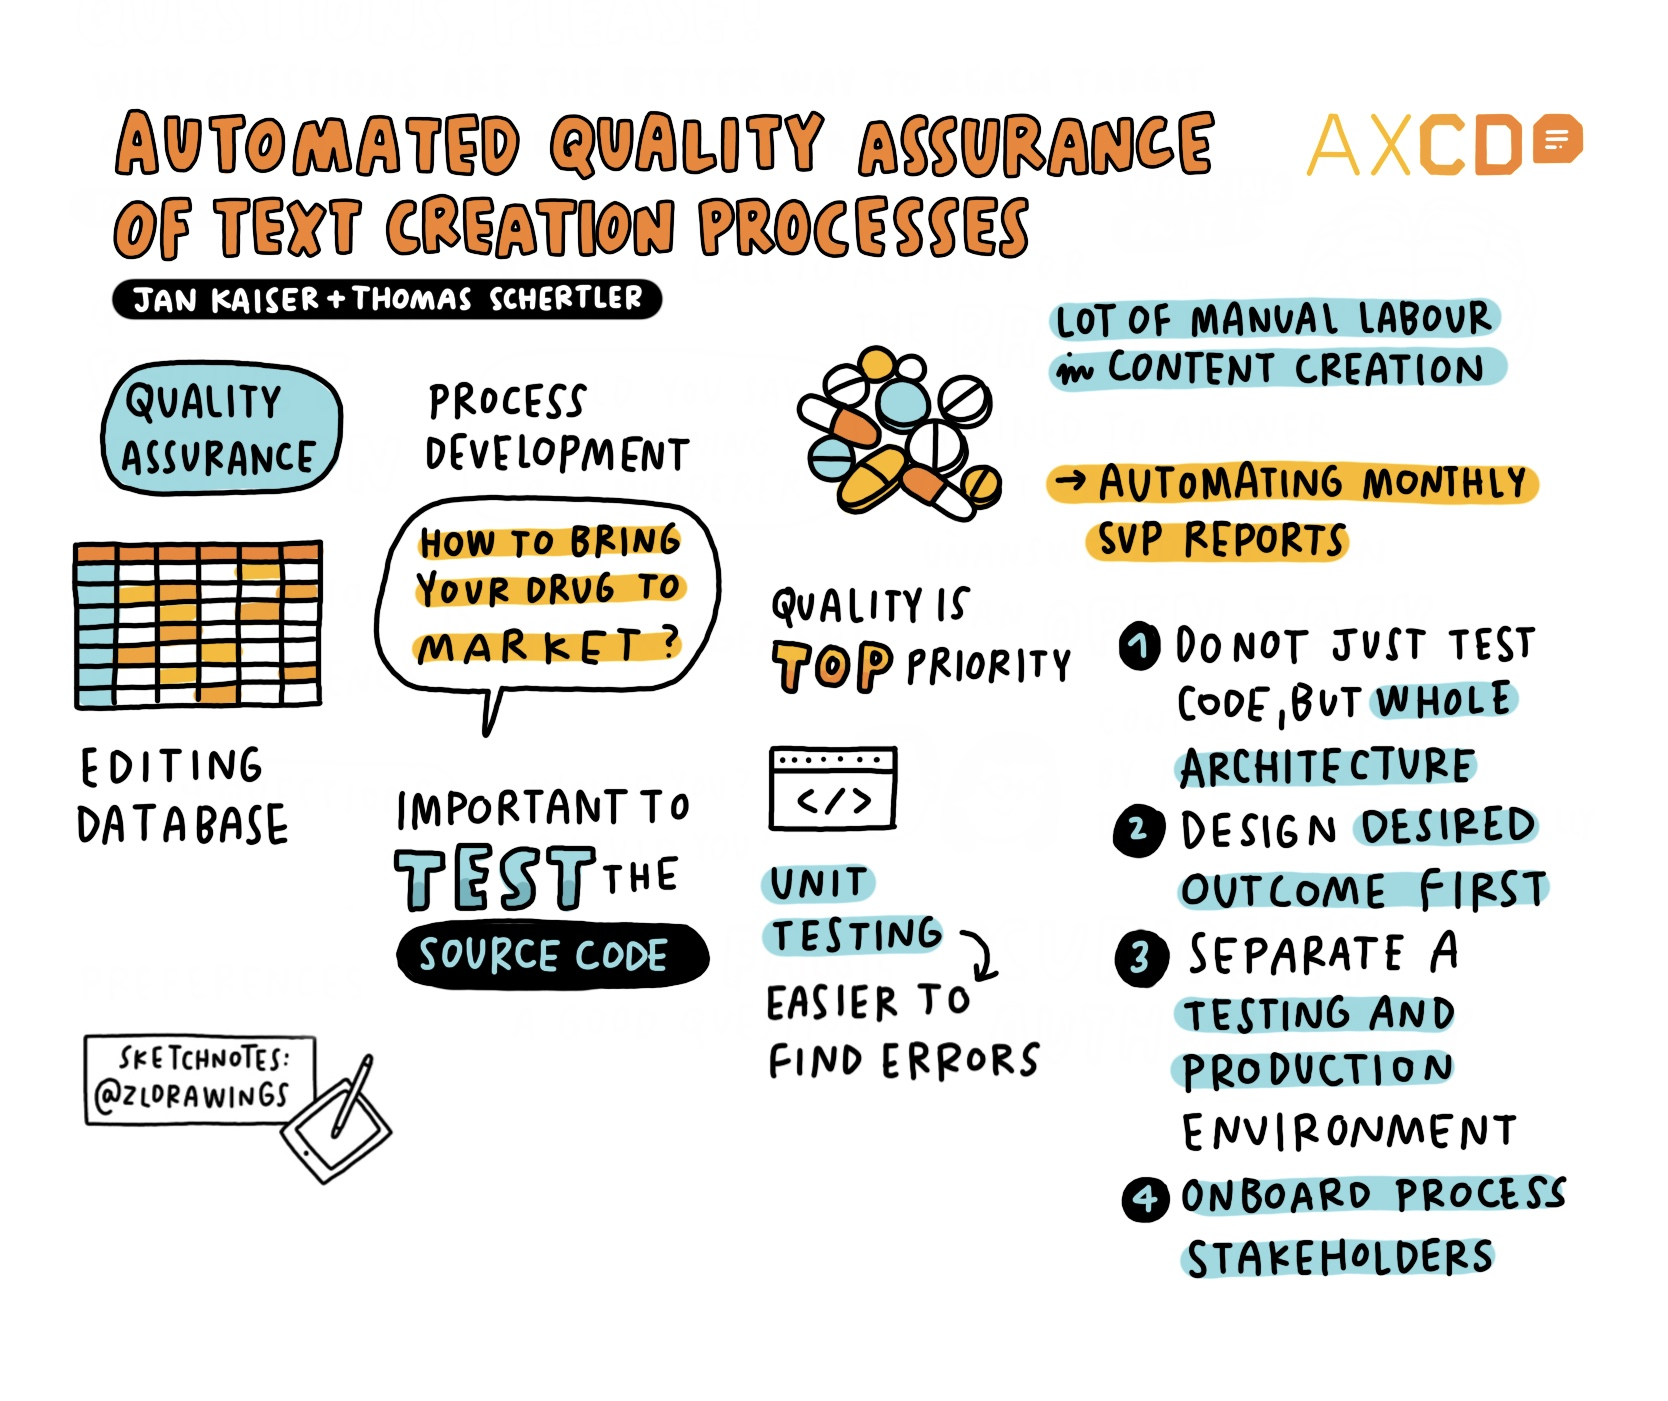 Sketchnote of AXCD Talk: automated quality assurance of text creation processes